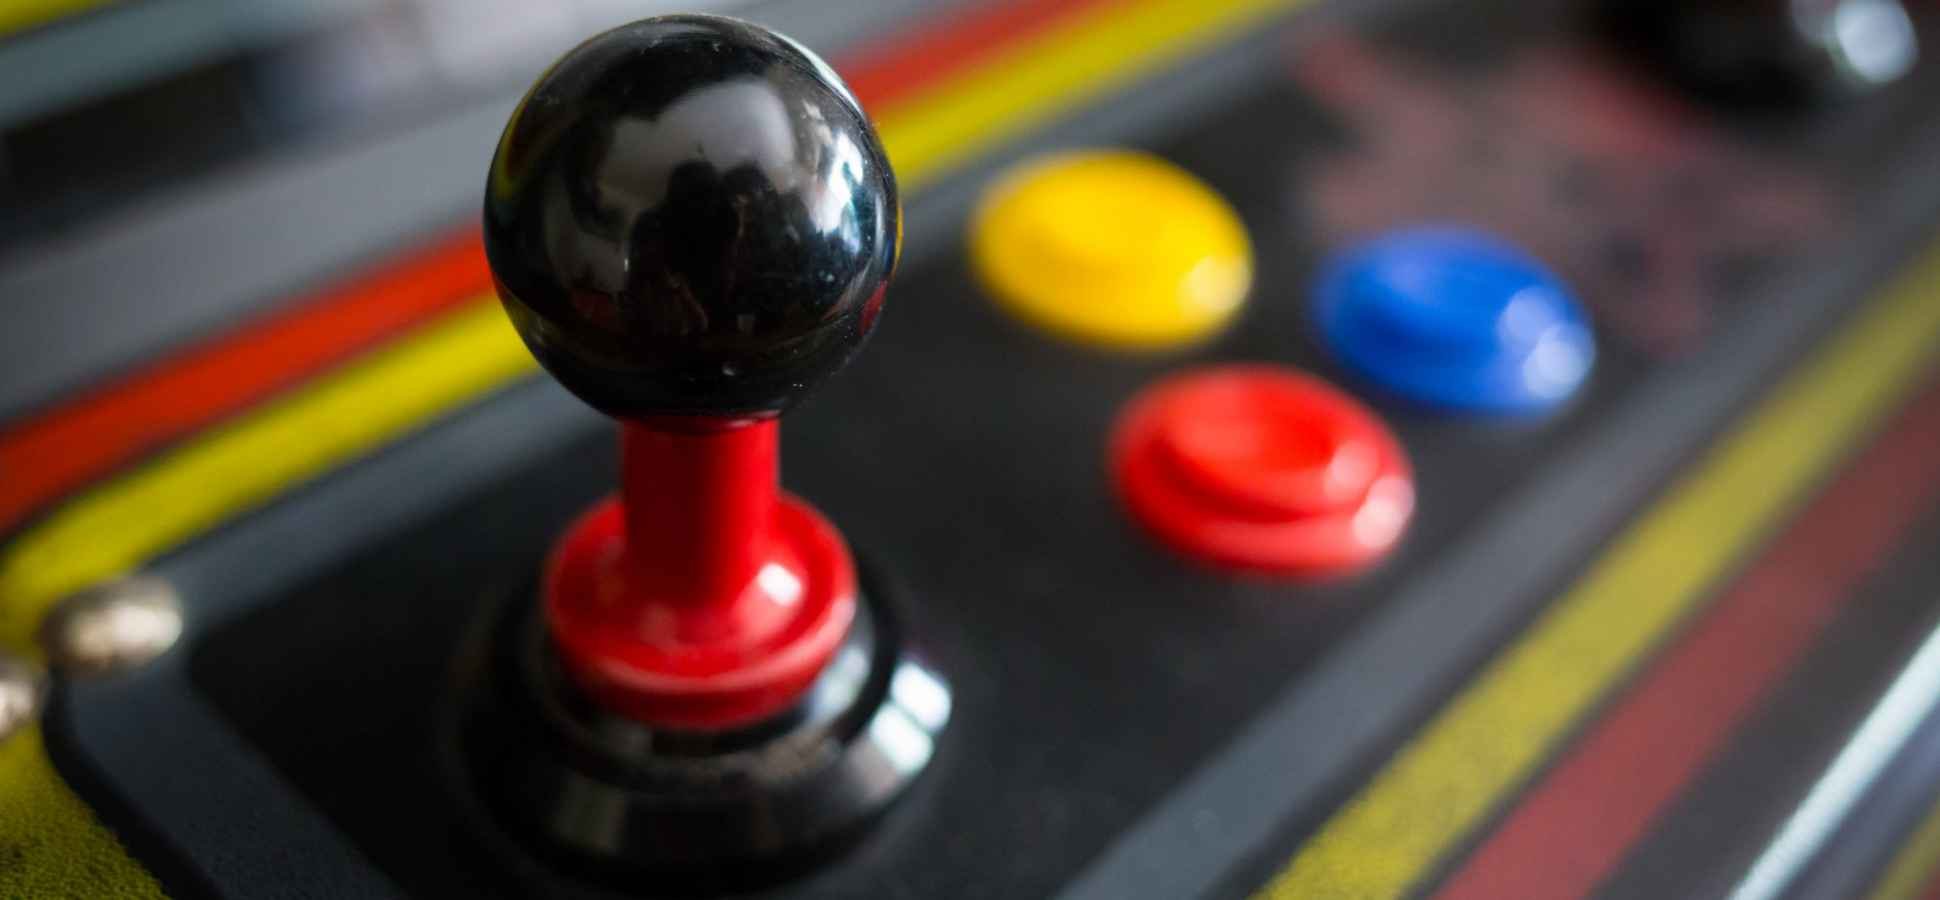 7 Ways Gamification Can Help Retain and Engage Millennials